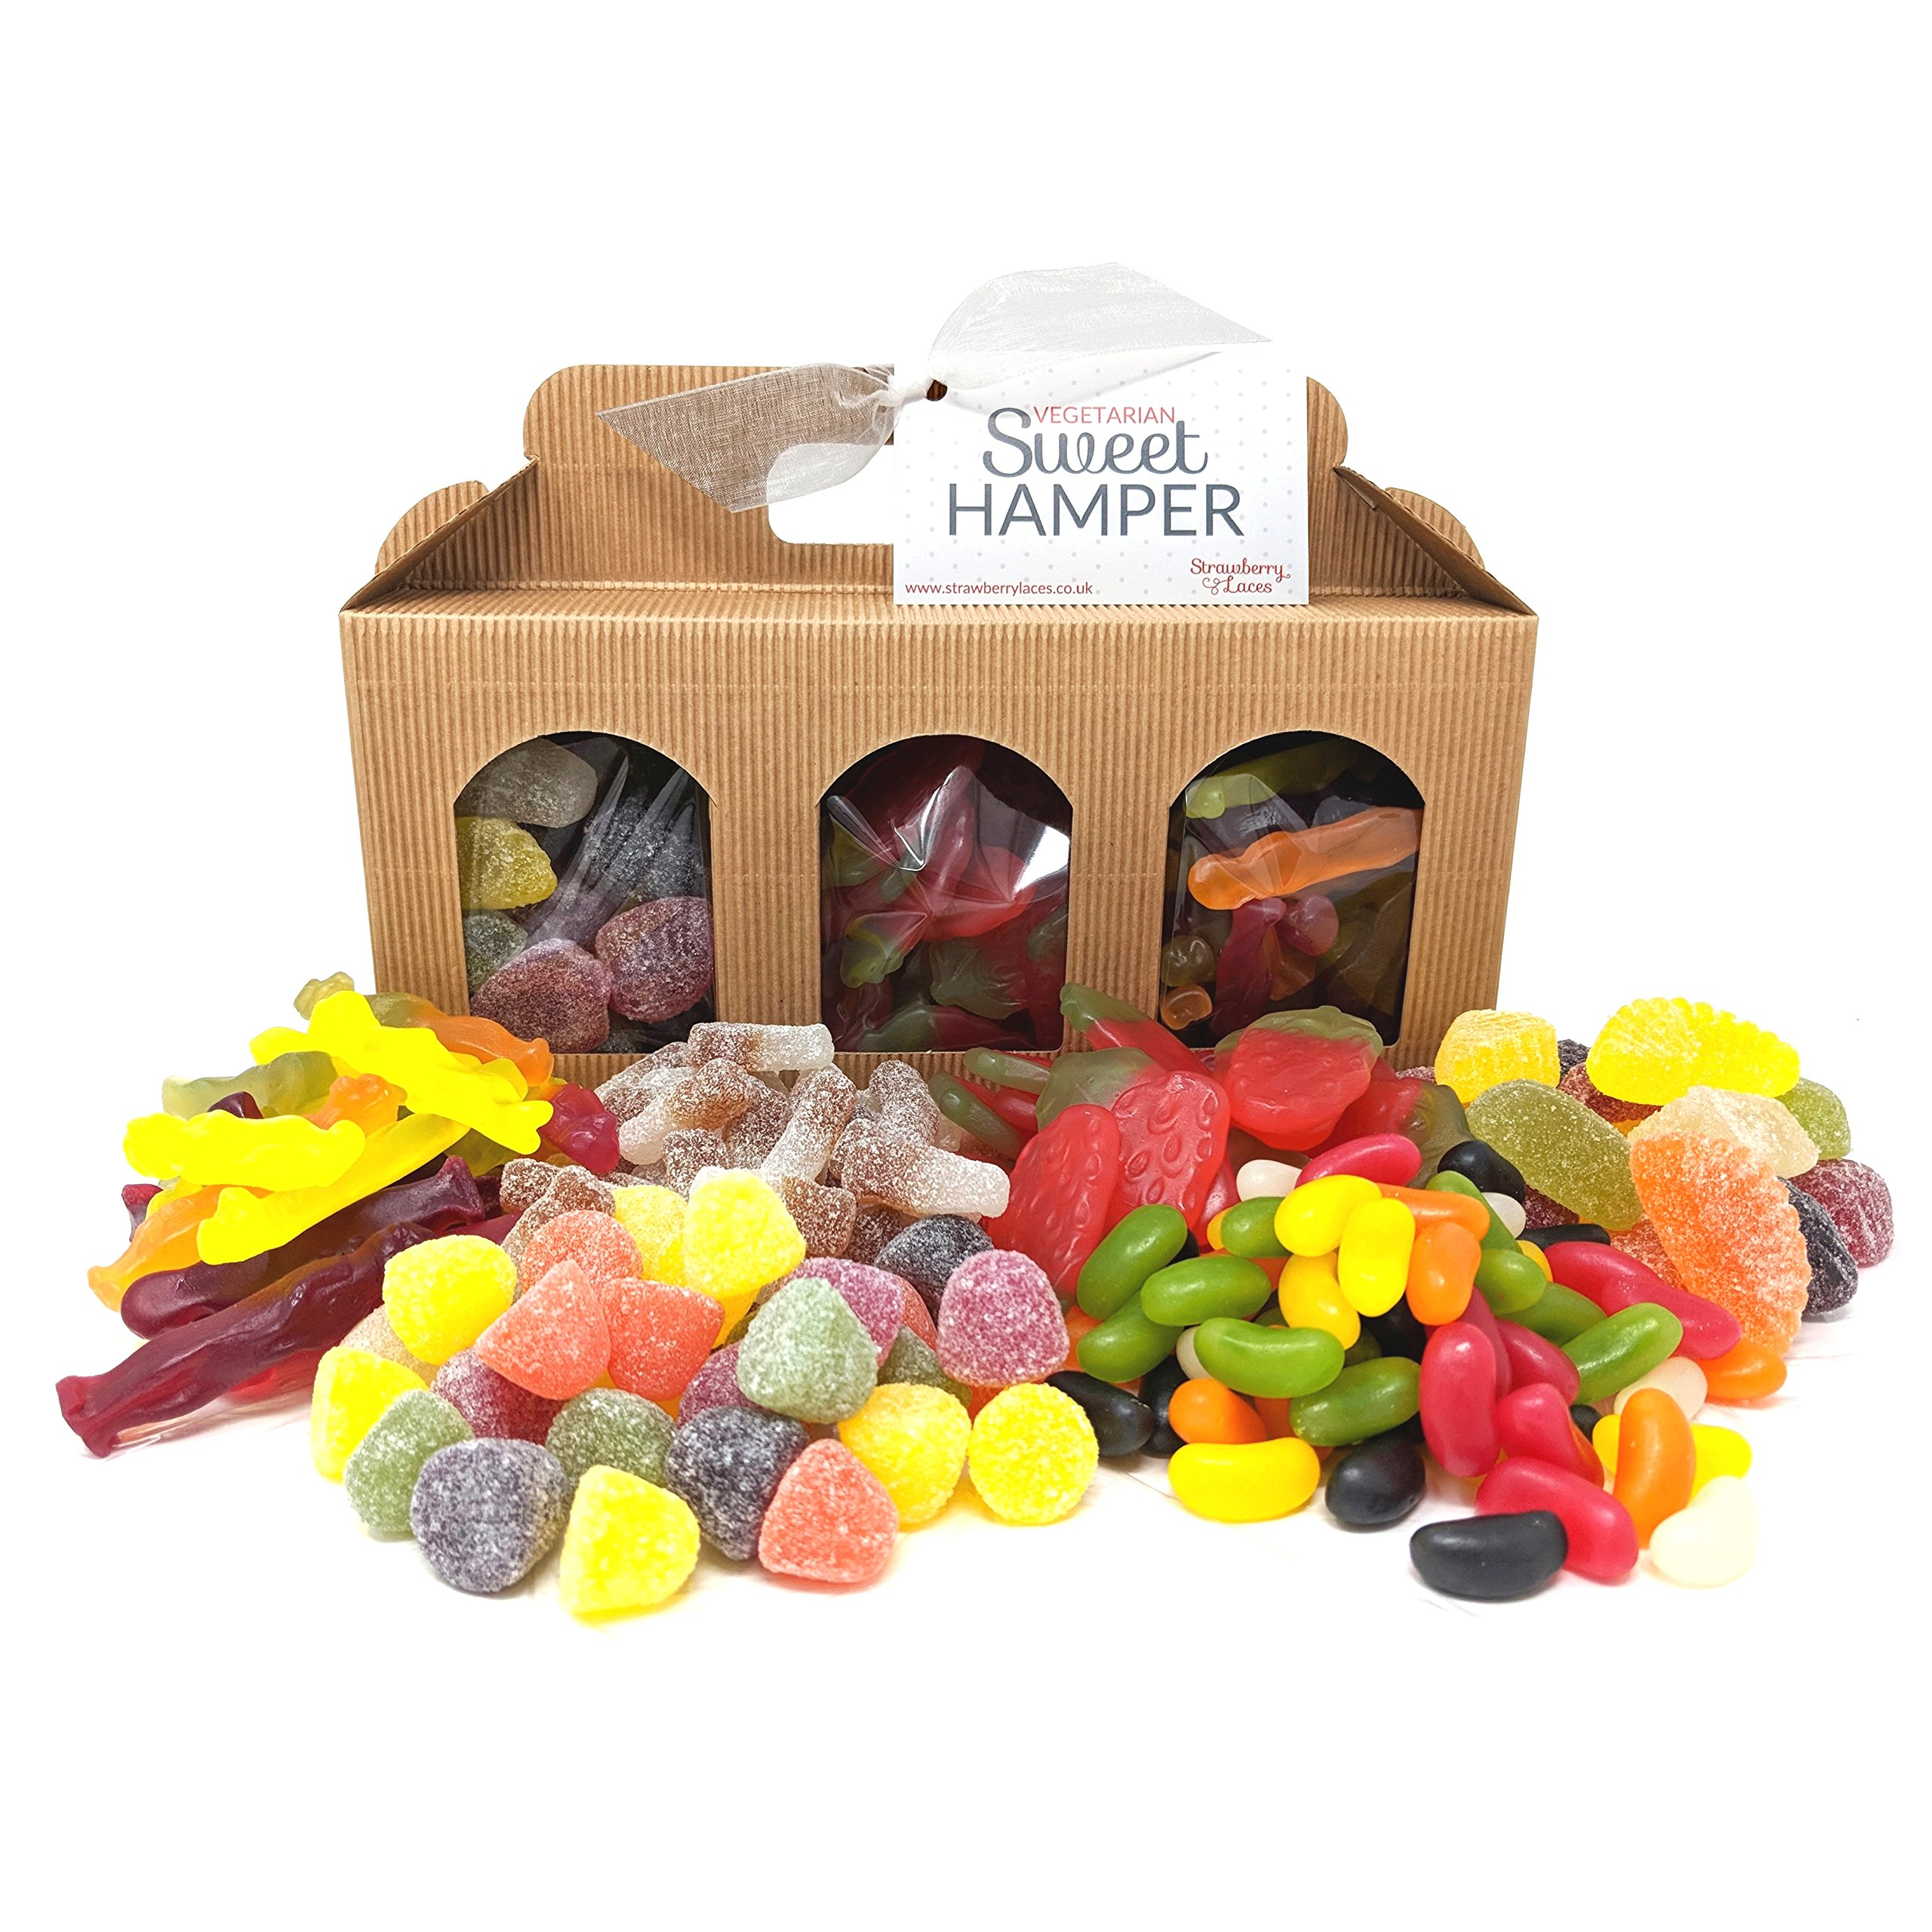 Vegan sweets amazon vegetarian sweet hamper box great vegetarian gift for birthday easter valentines mothers negle Image collections